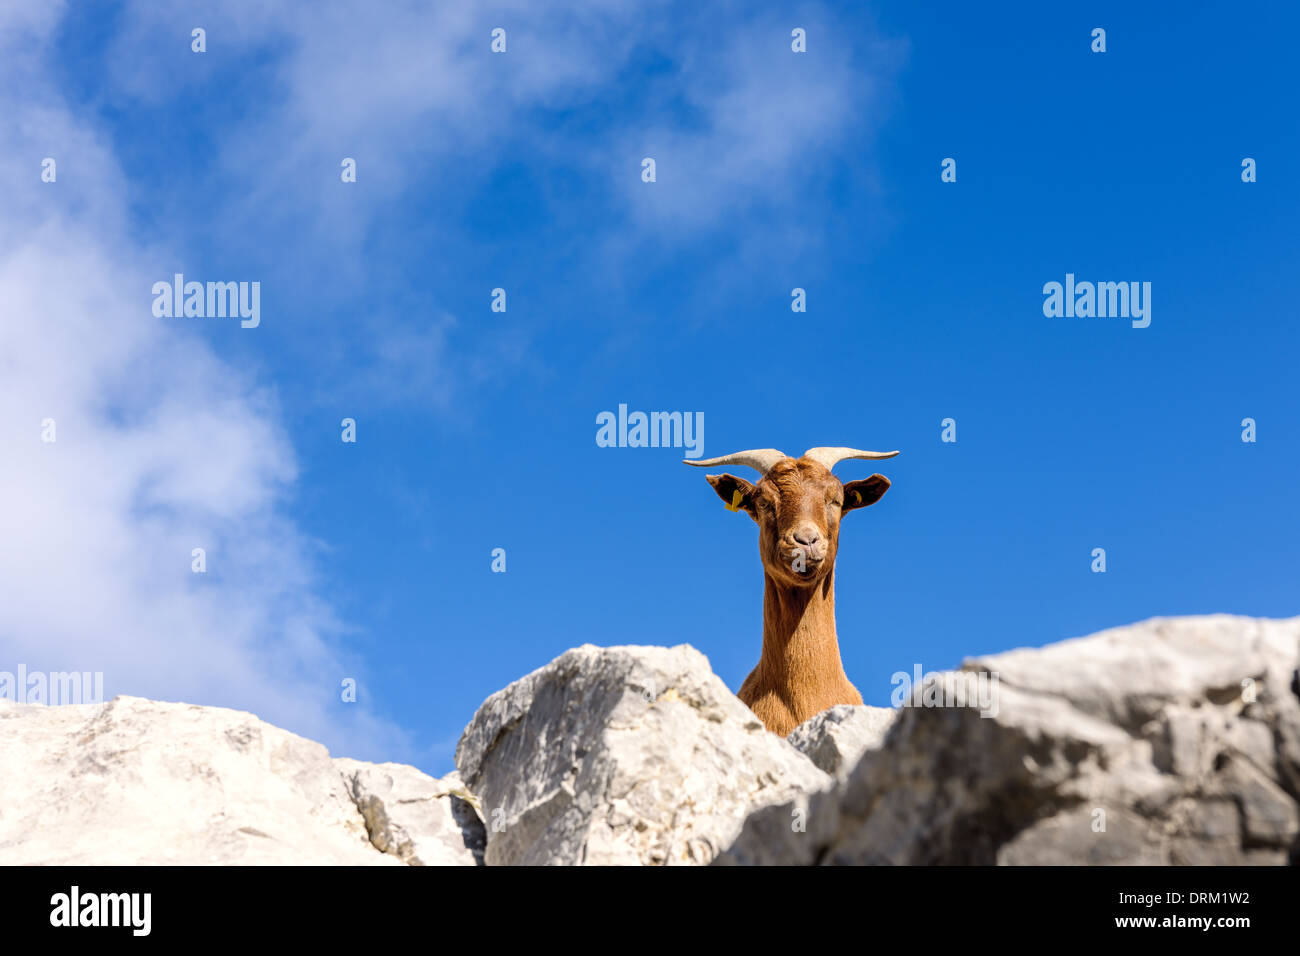 Spain, Cantabria, Picos de Europa National Park, Goat in the mountains - Stock Image